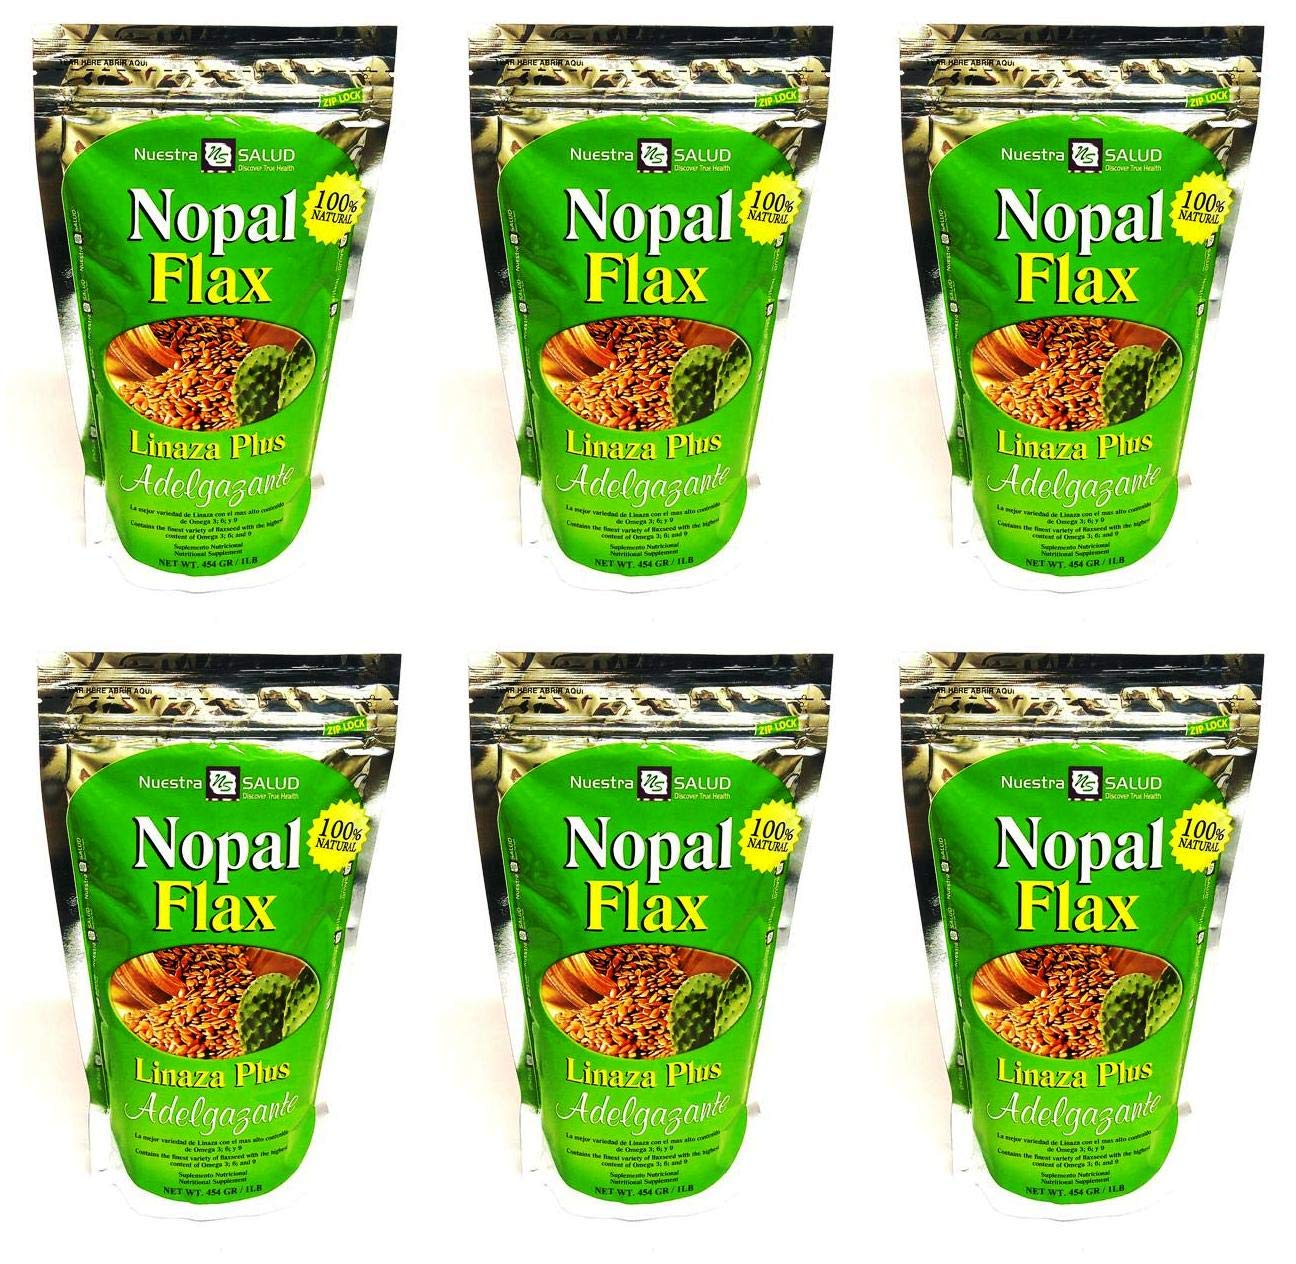 Nopal Flax Adelgazante Linaza Plus Value 6 pack